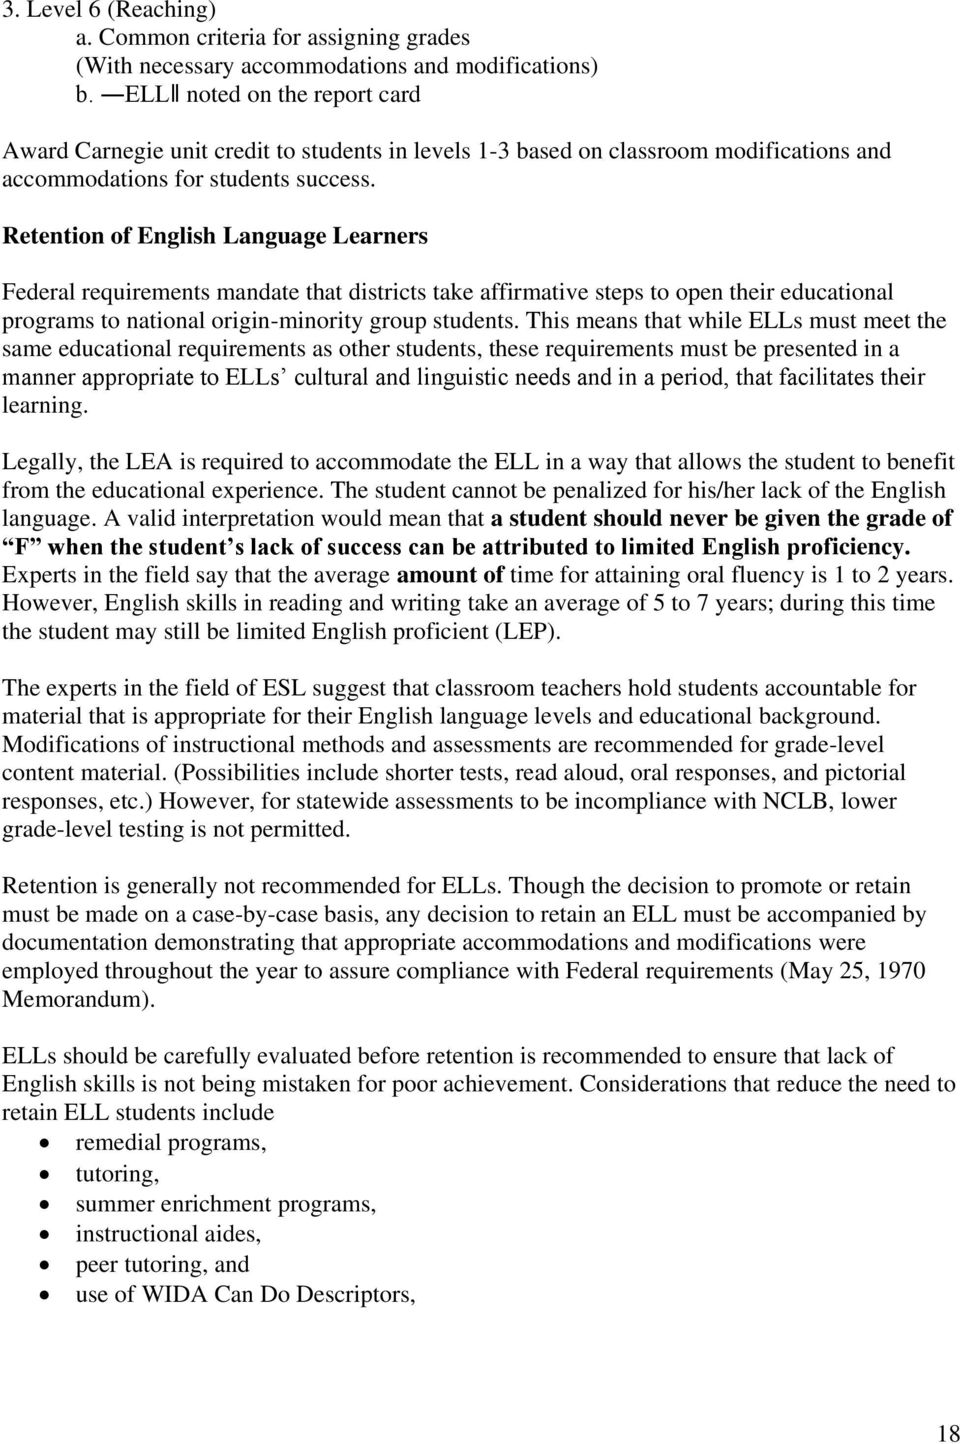 Retention of English Language Learners Federal requirements mandate that districts take affirmative steps to open their educational programs to national origin-minority group students.